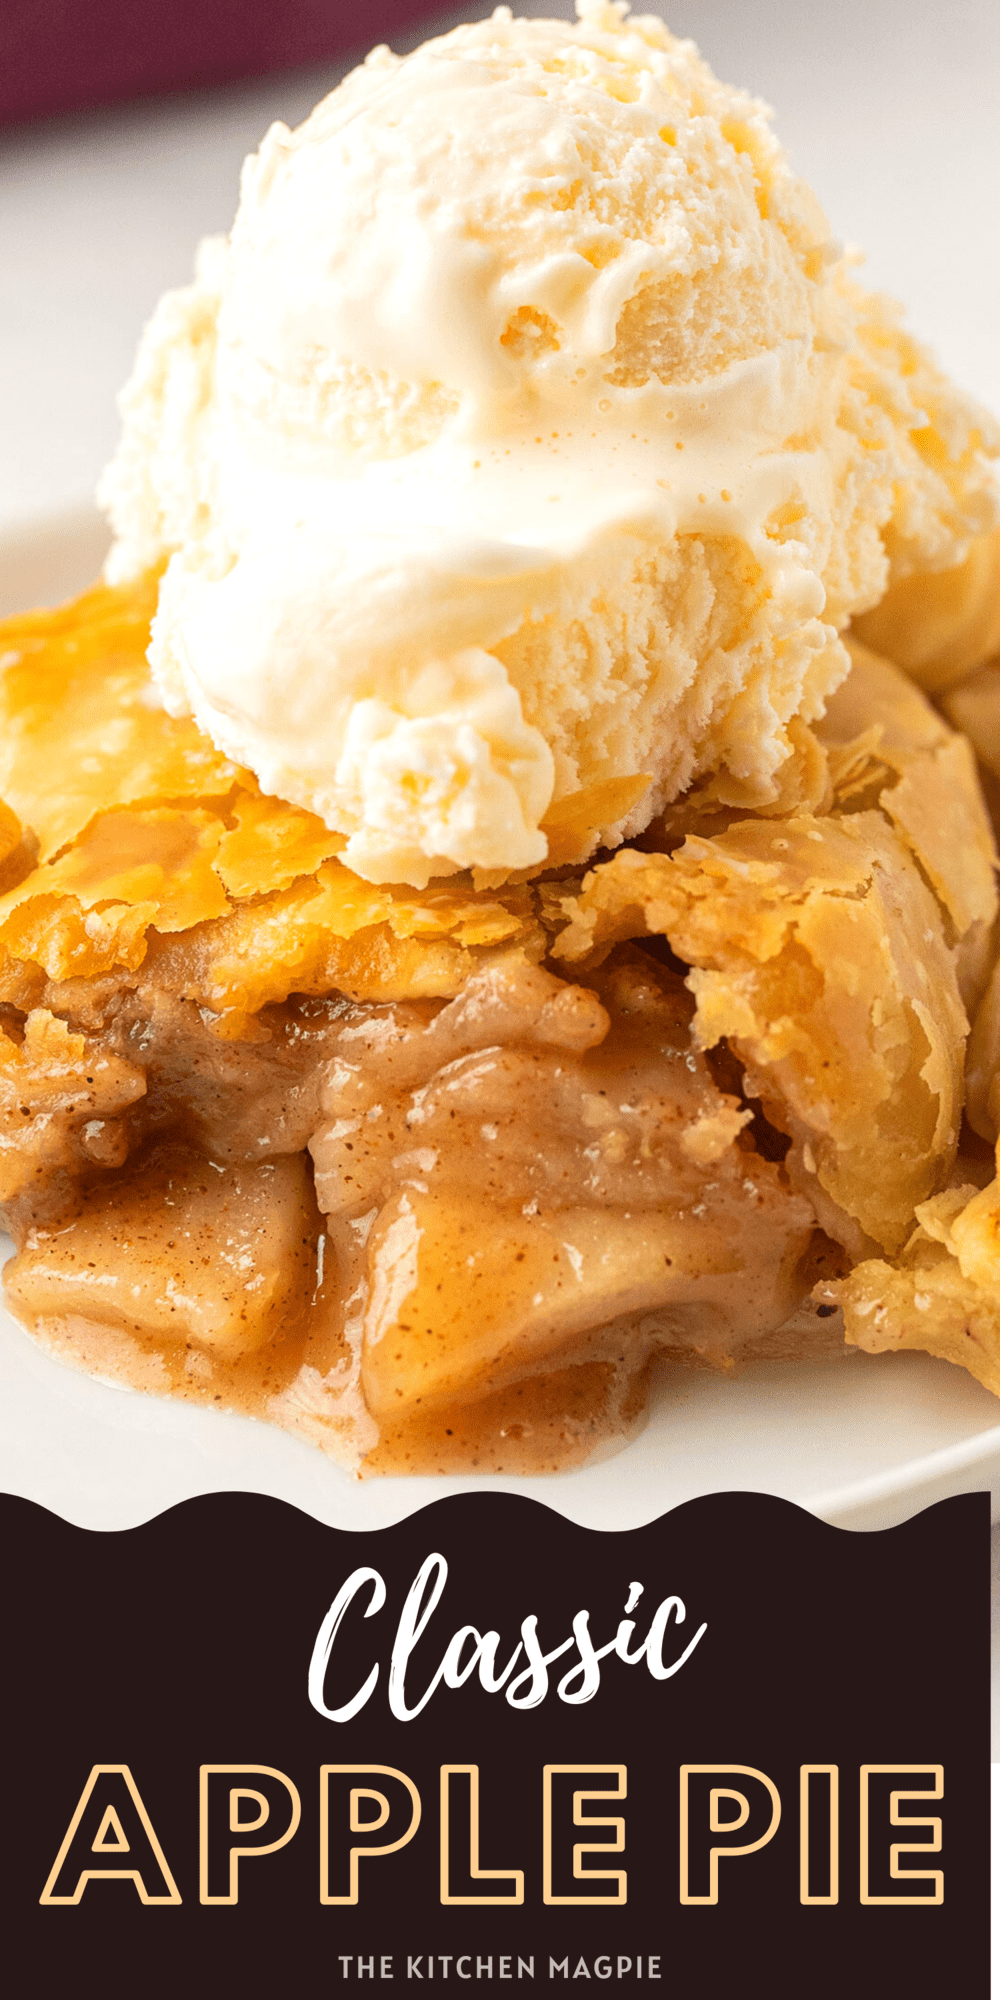 Nothing beats a classic apple pie bursting with sweet cinnamon apple filling that is sandwiched between two perfectly flakey pie crusts!